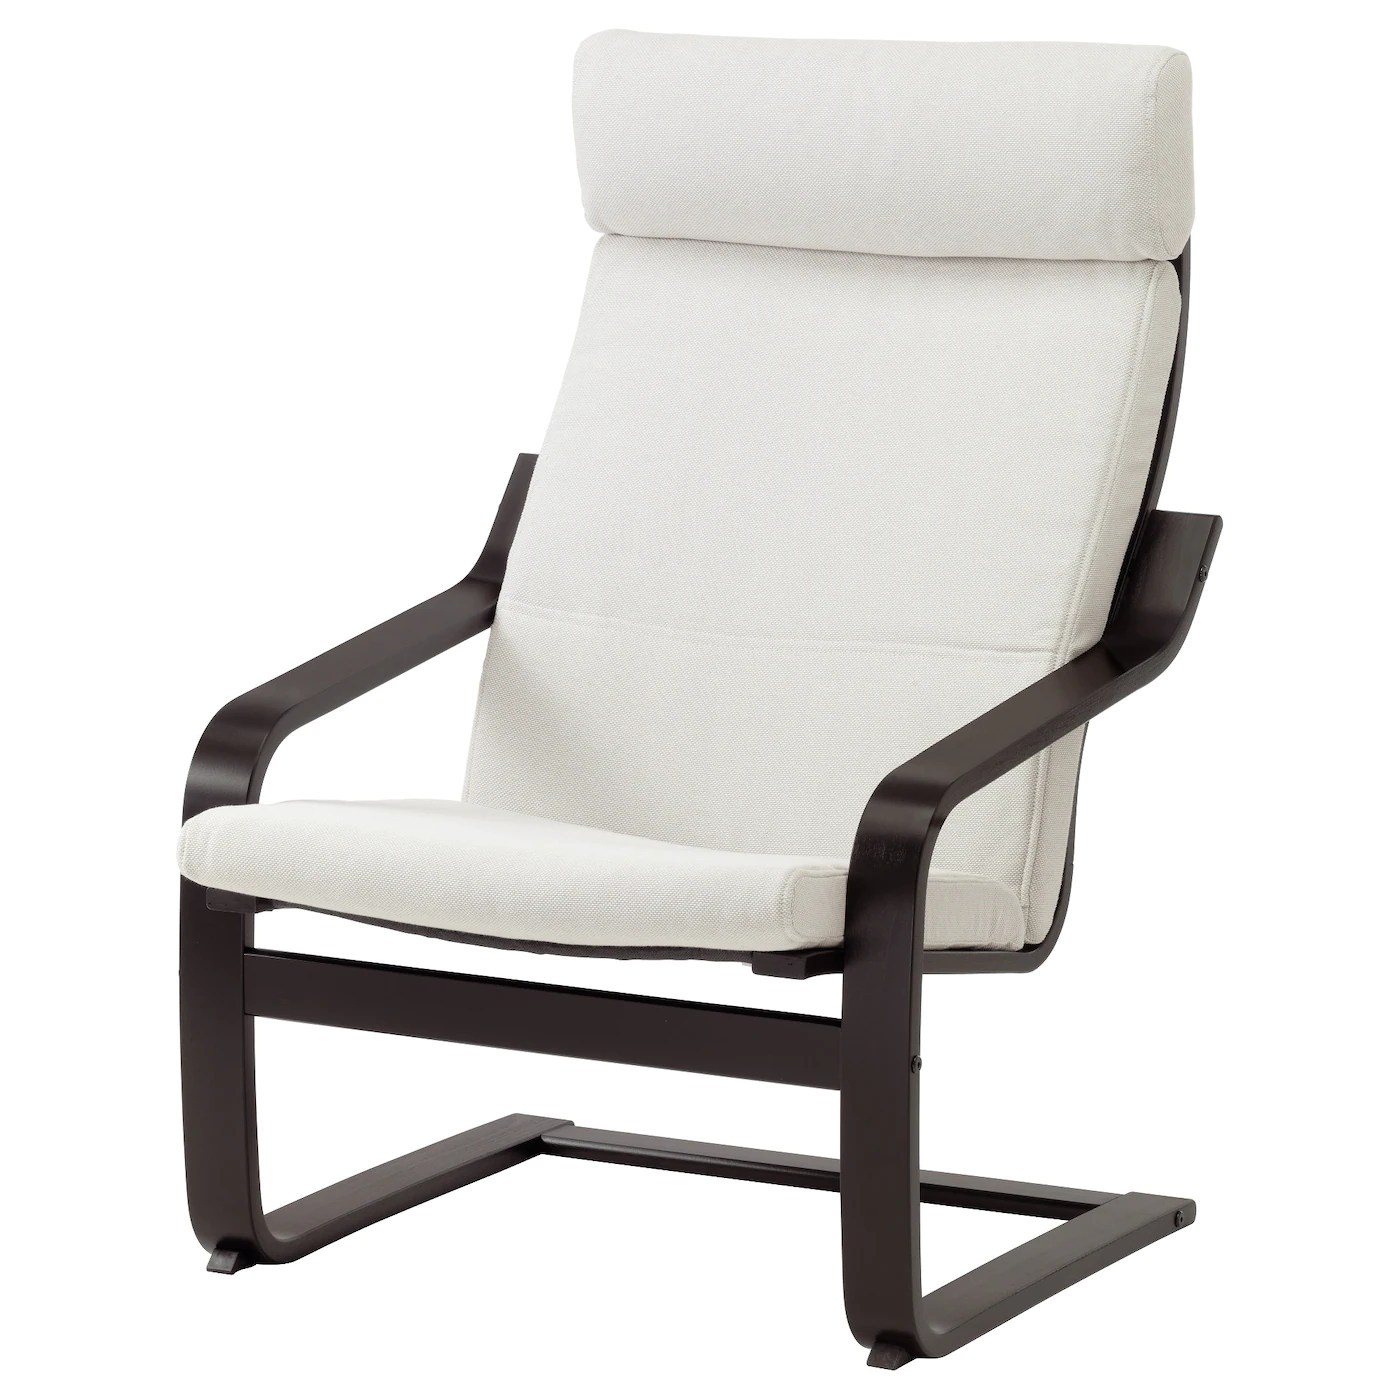 ikea arm chairs hanging chair natural poÄng armchair black brown finnsta white